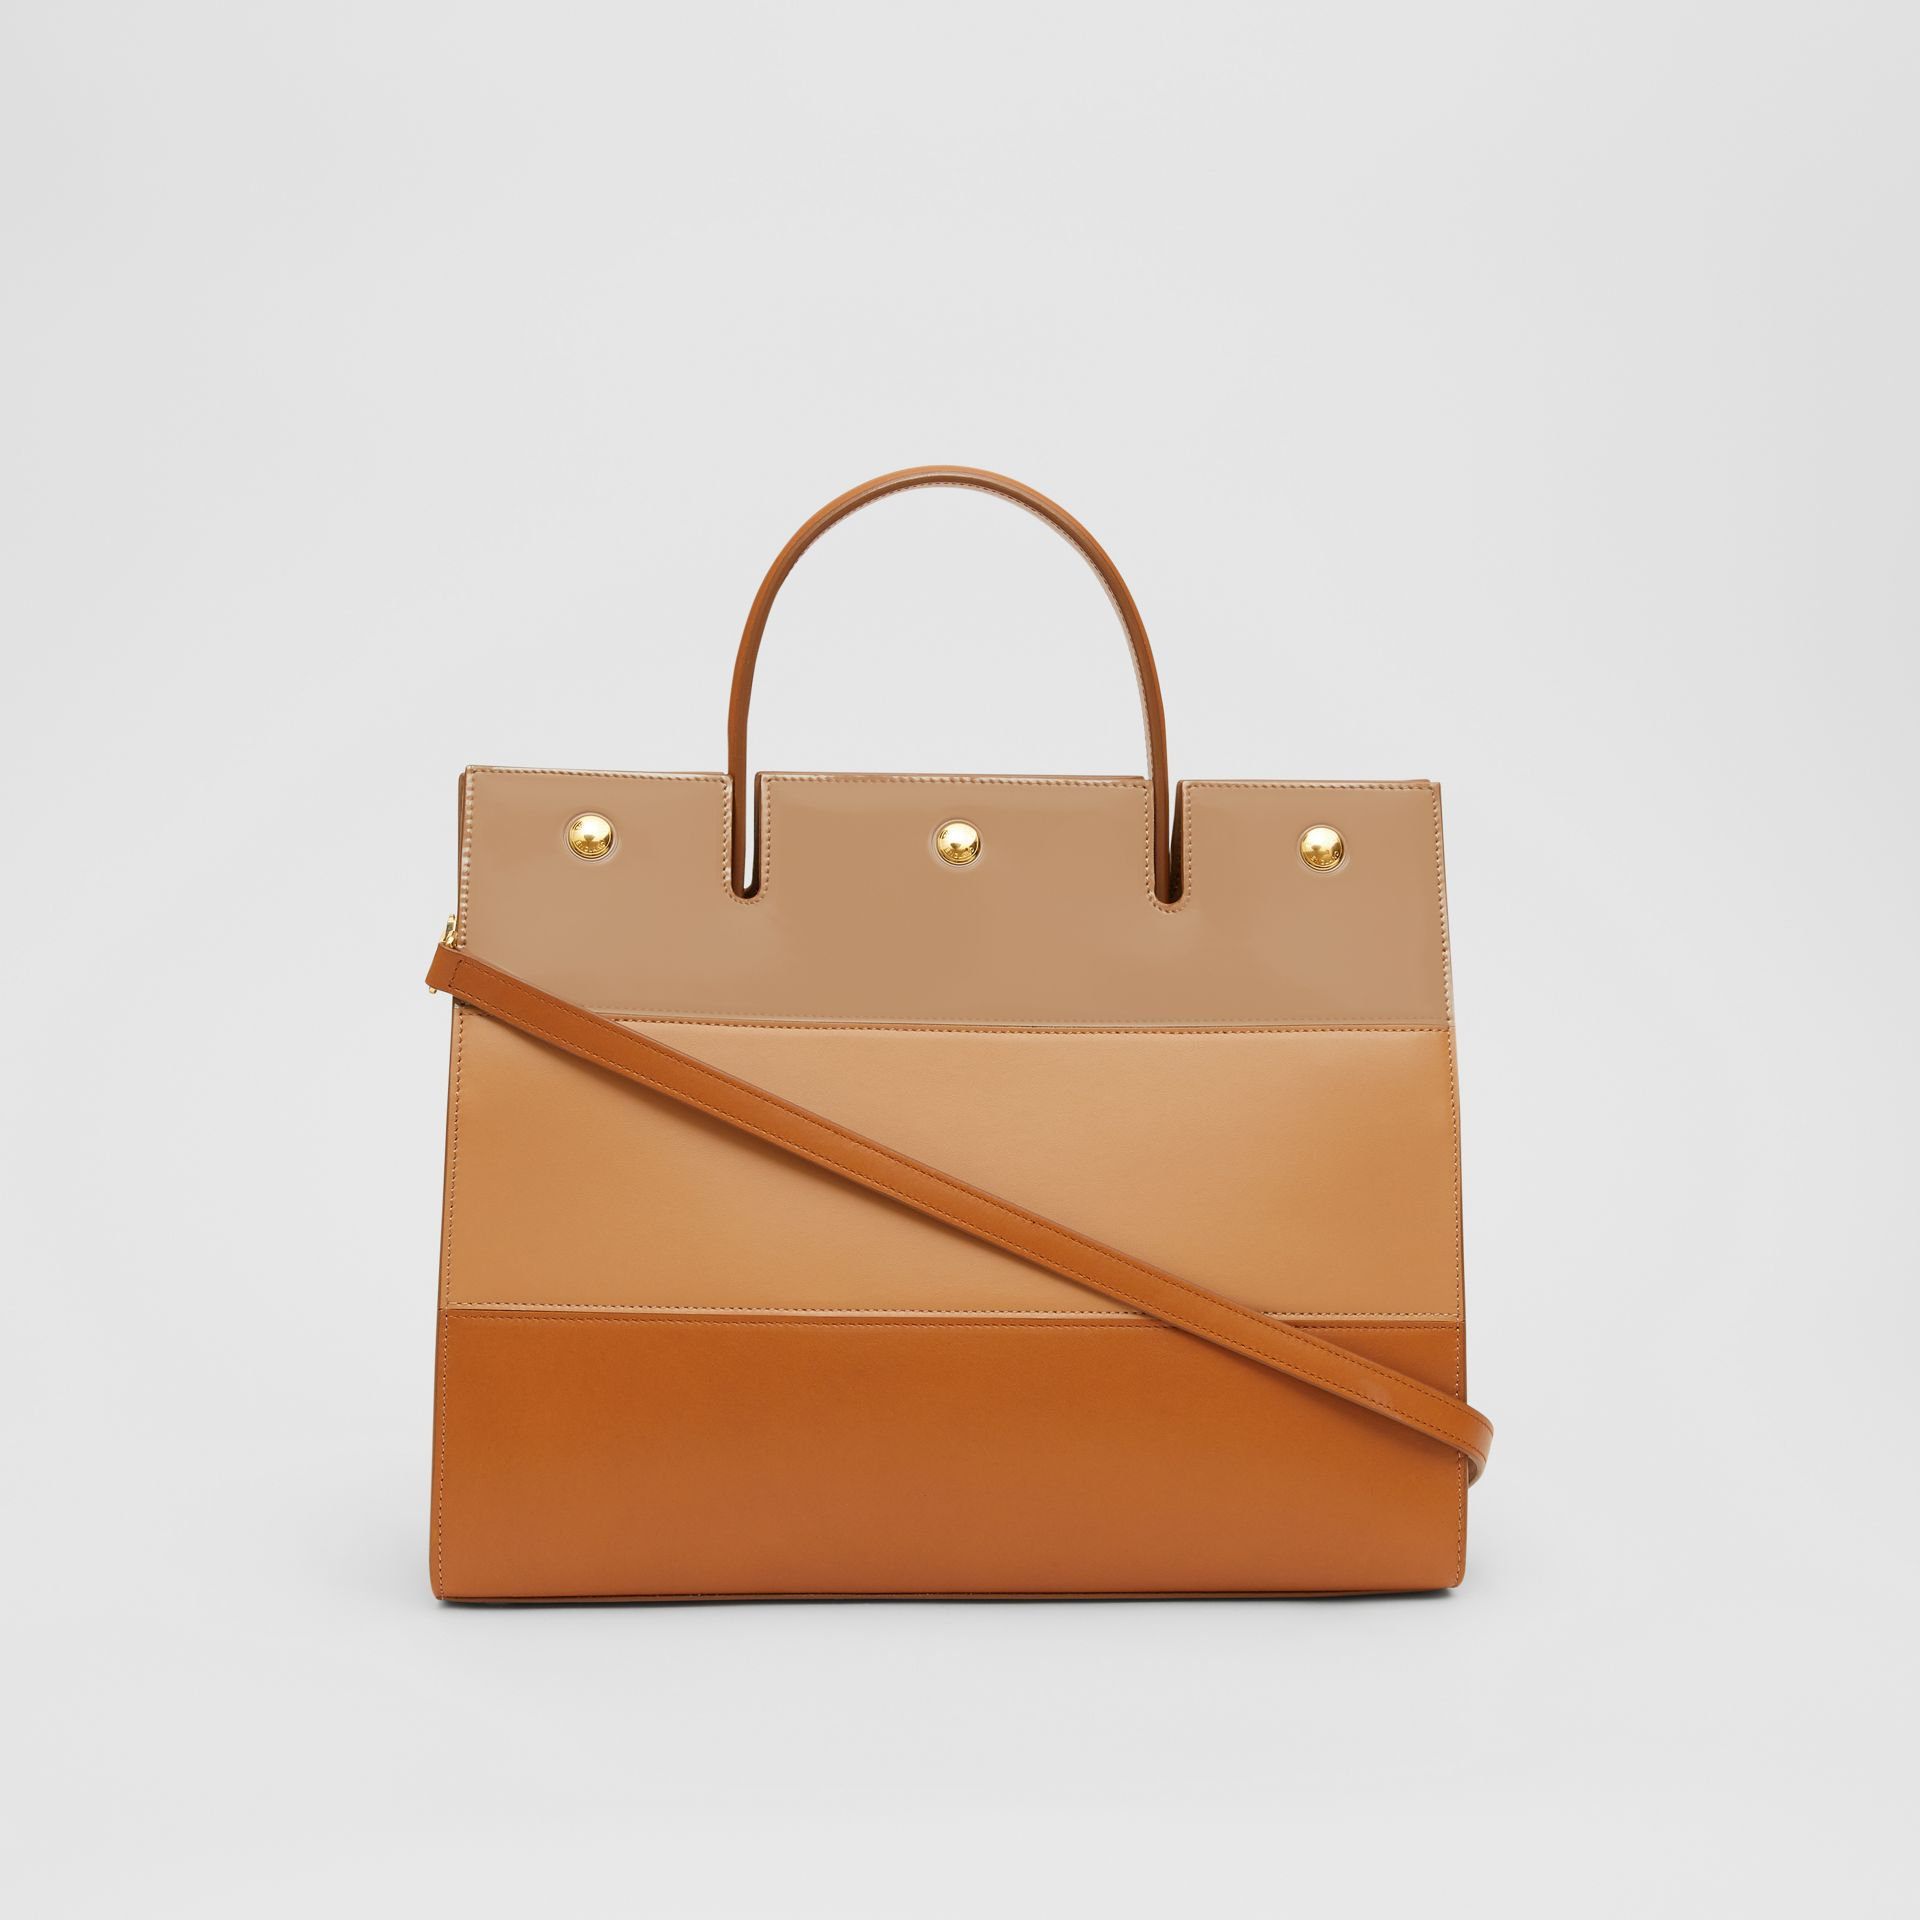 Medium Panelled Leather Title Bag in Soft Fawn - Women | Burberry - gallery image 7